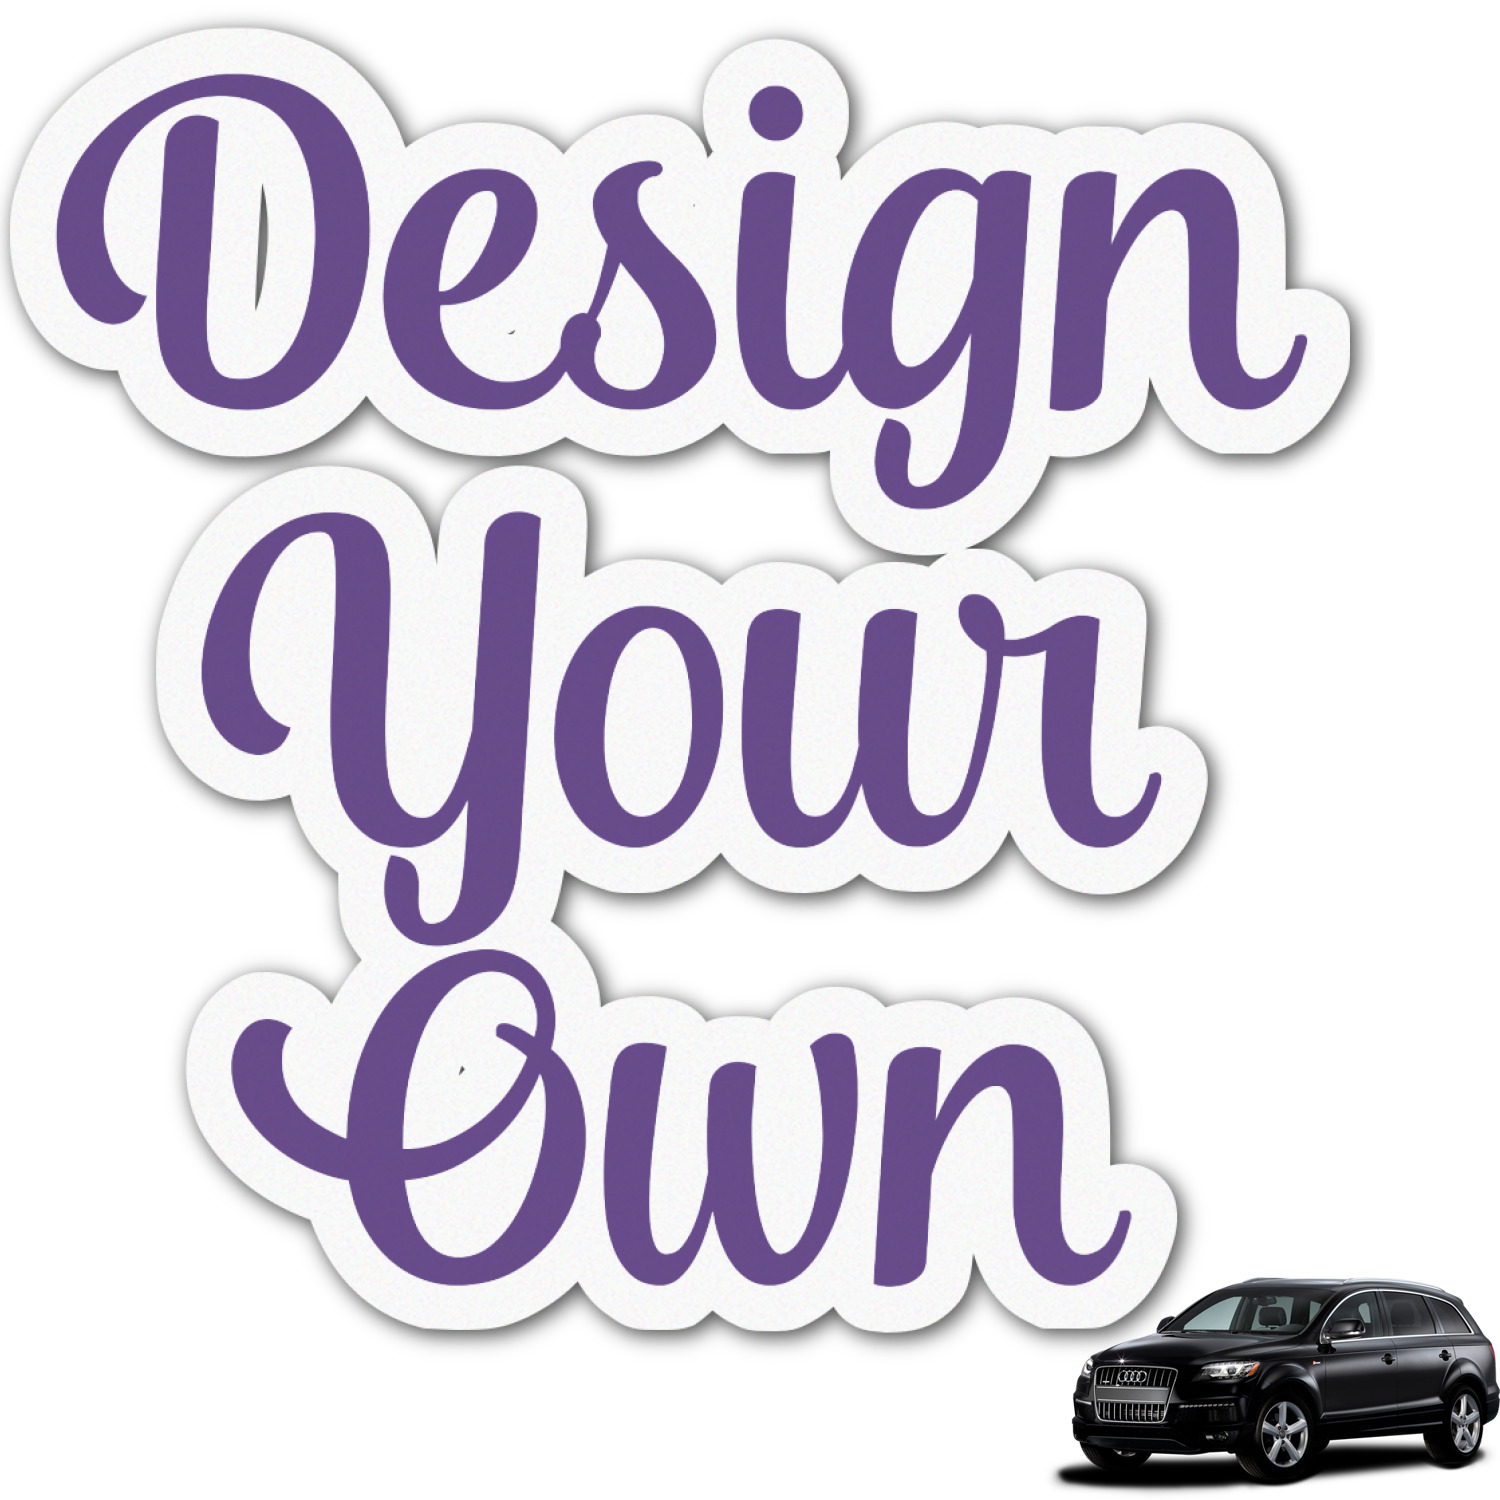 Design Your Own Car >> Design Your Own Personalized Graphic Car Decal